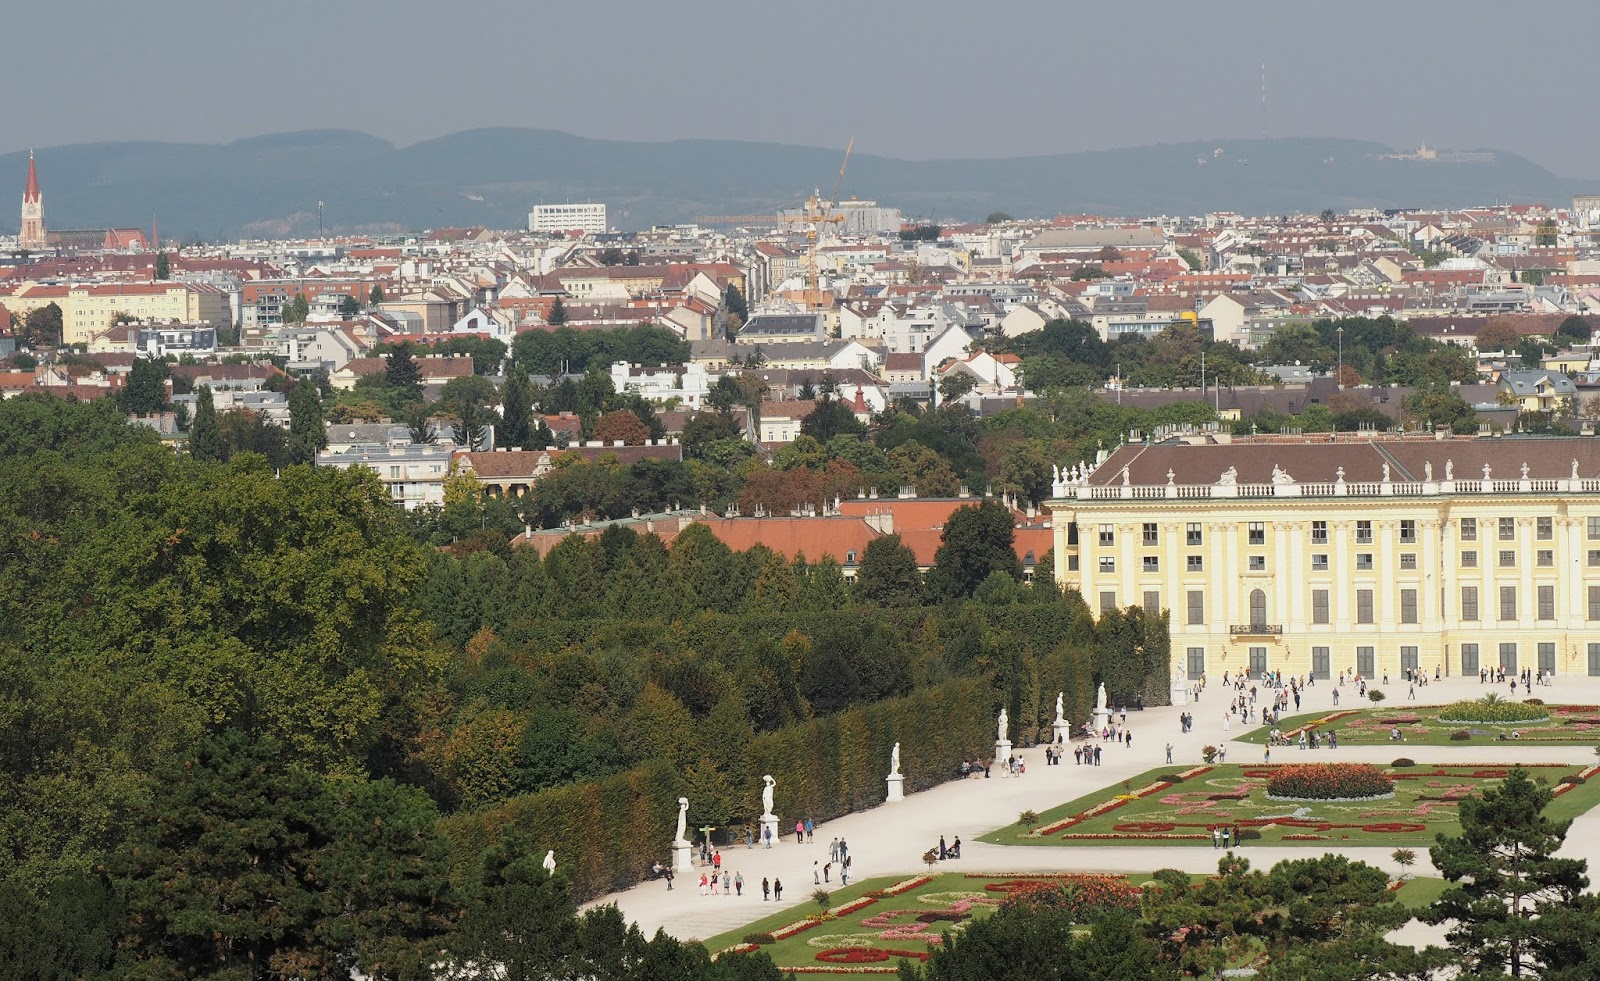 Views of Vienna from the Schon Palace